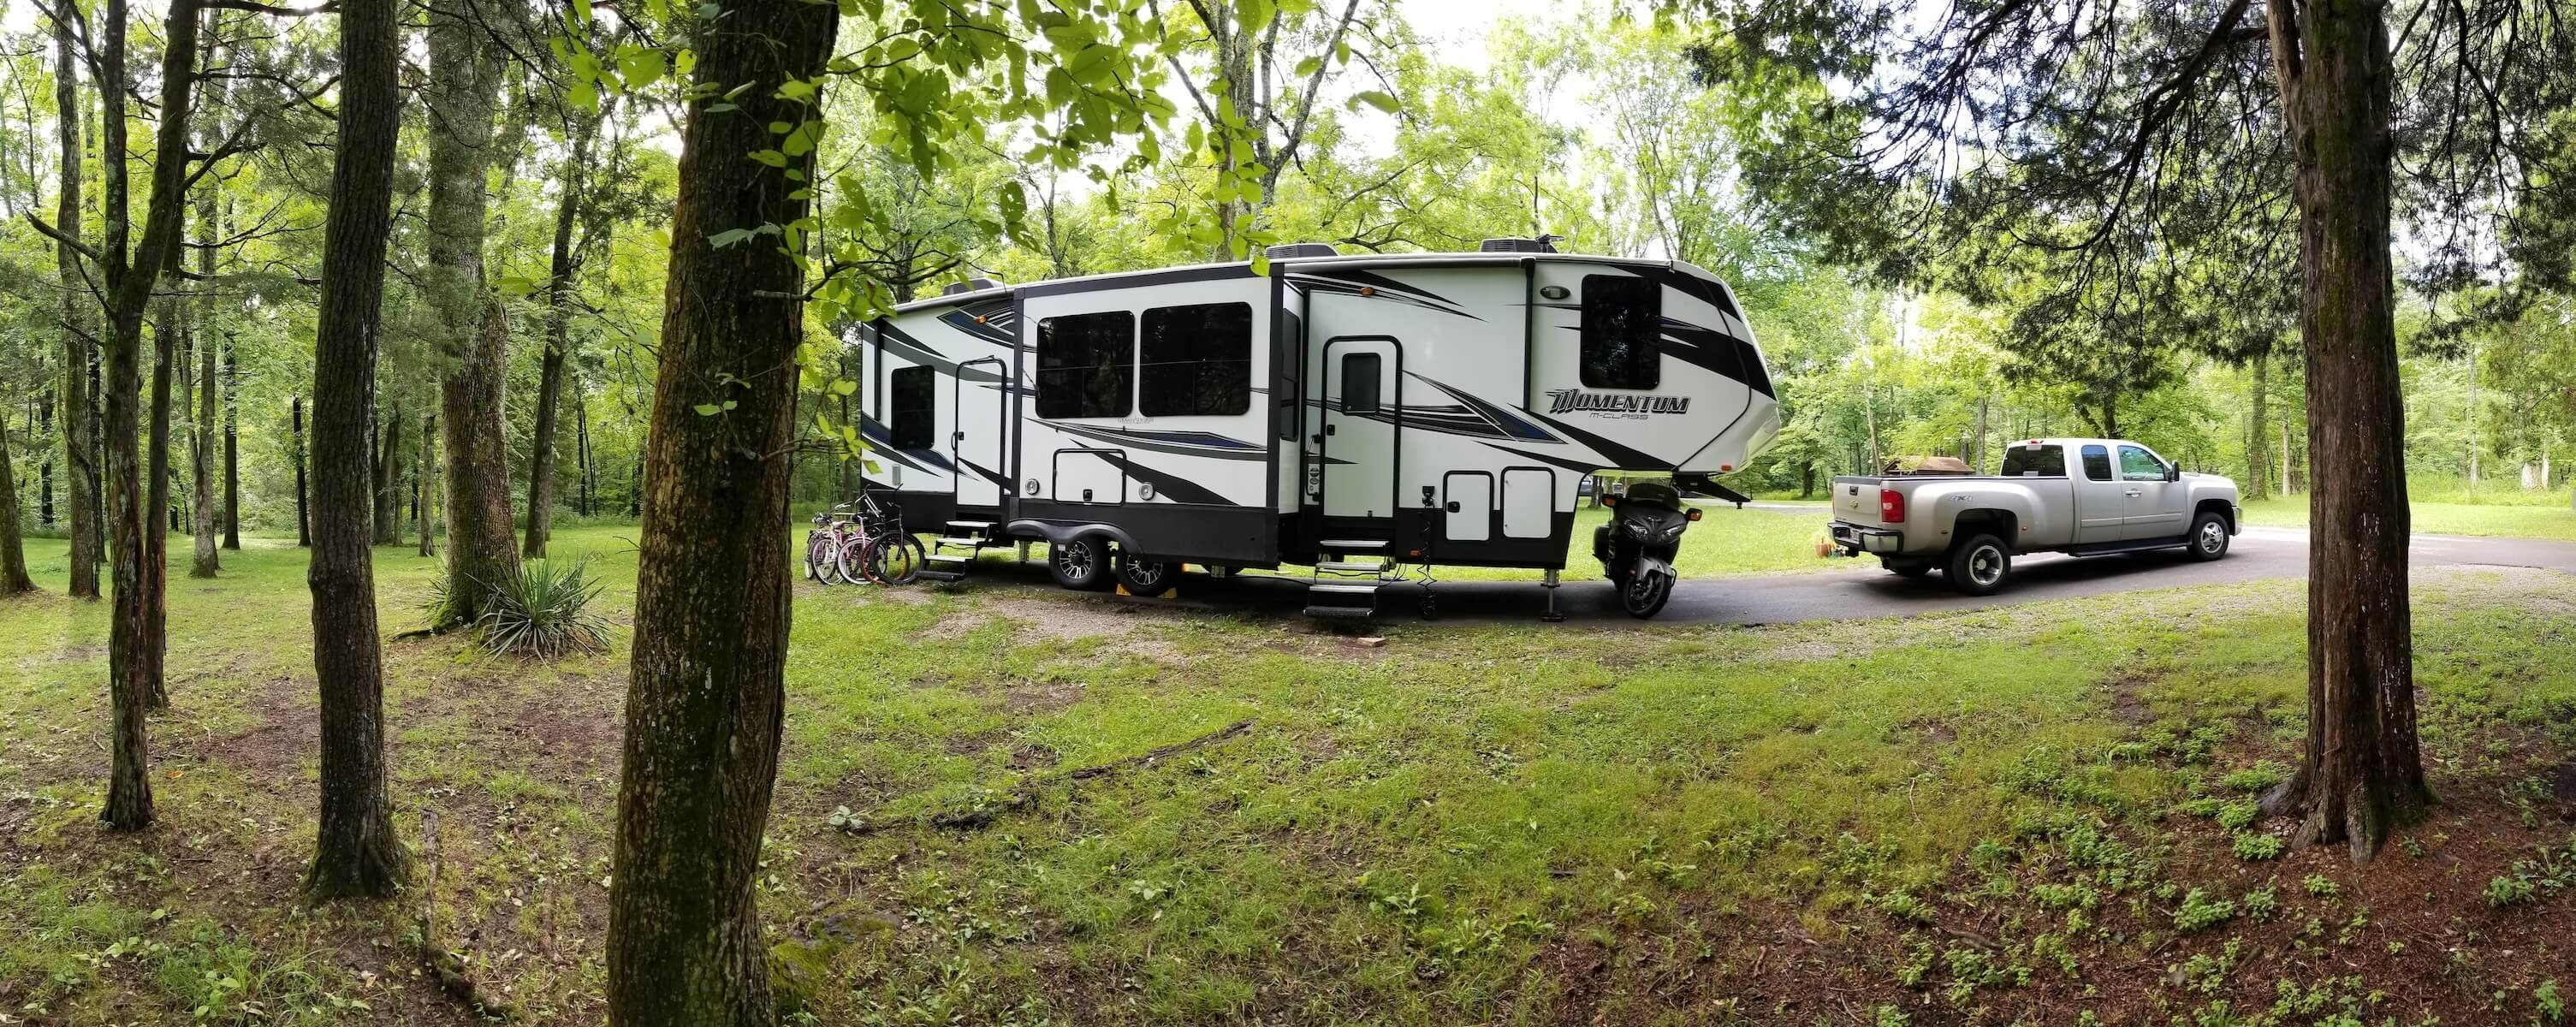 Grand Design Momentum Fifth Wheel with Dually Truck in Forest Campground